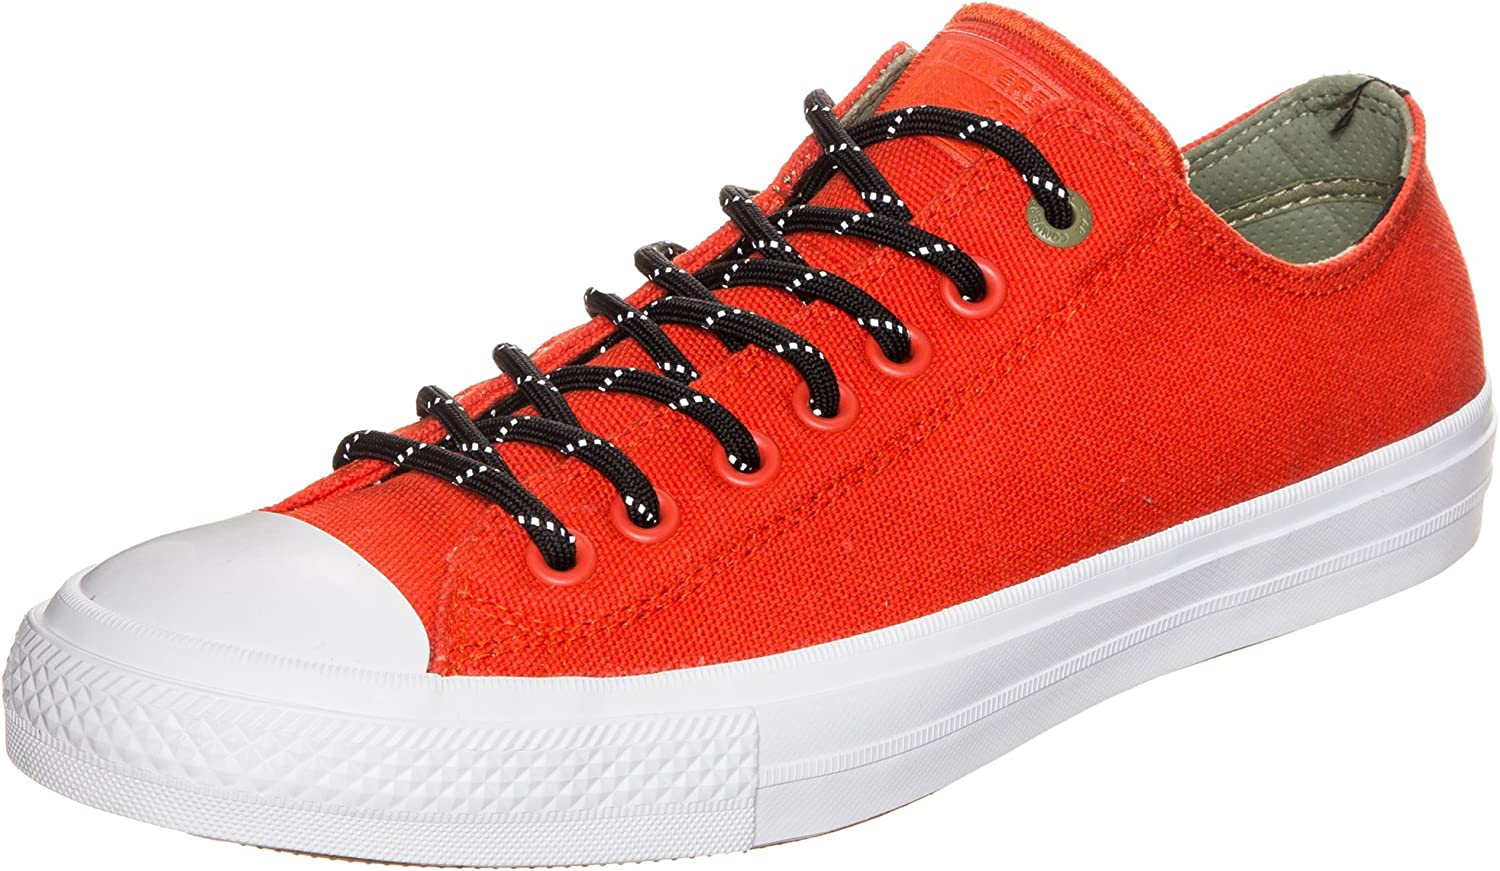 Mens Converse Chuck Taylor All Star II Shield Red Canvas Trainers 153539C